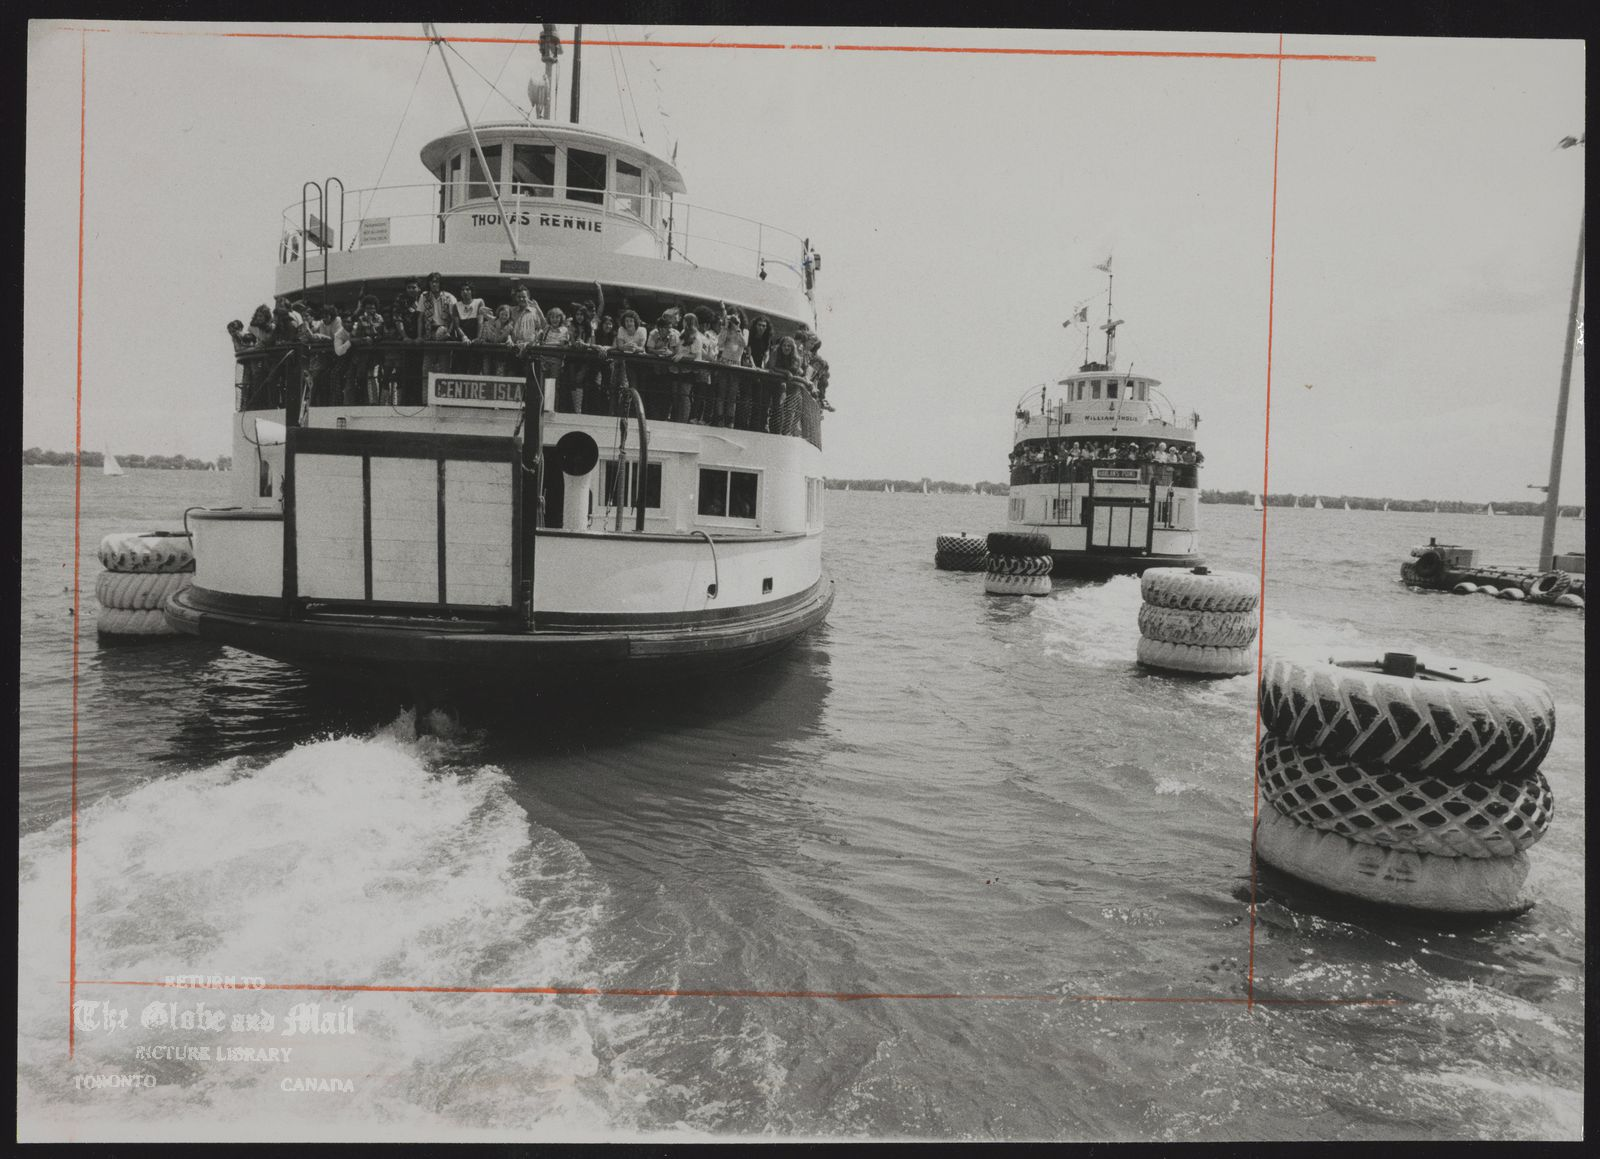 THOMAS RENNIE (Ferry) Thousands of people took advantage of free ferry rides to the Toronto Islands yesterday.